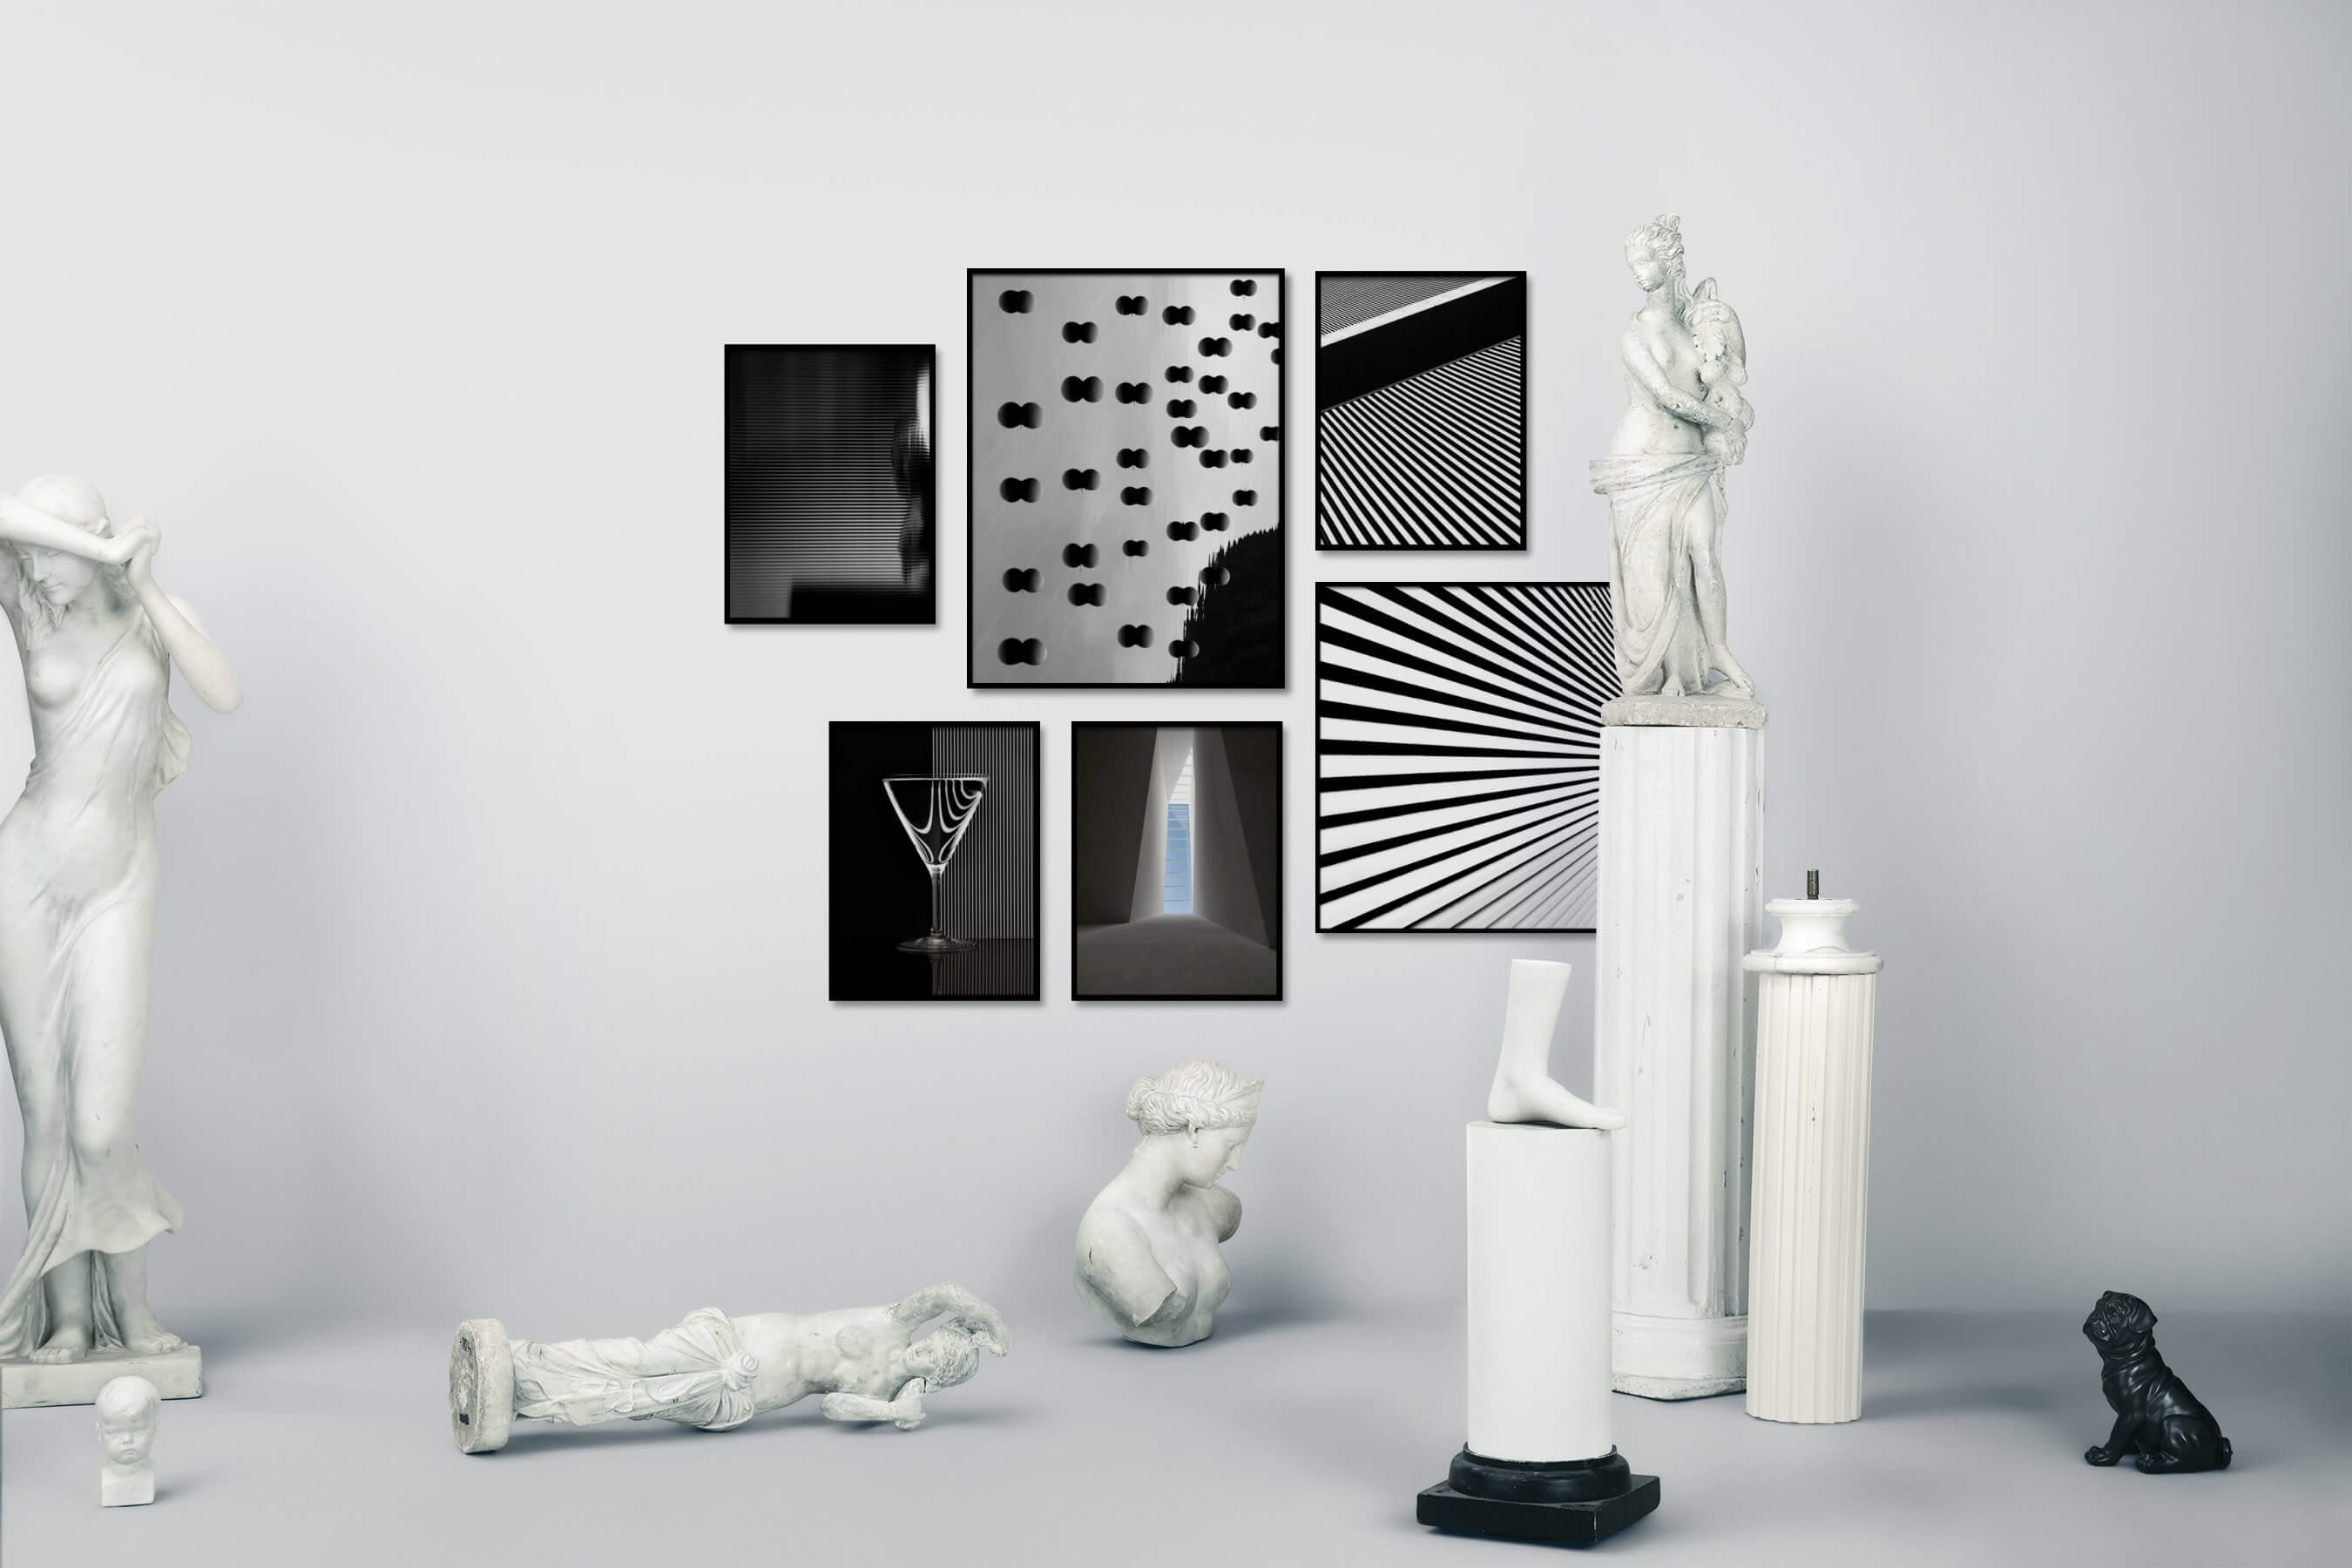 Gallery wall idea with six framed pictures arranged on a wall depicting Black & White, For the Moderate, and For the Maximalist